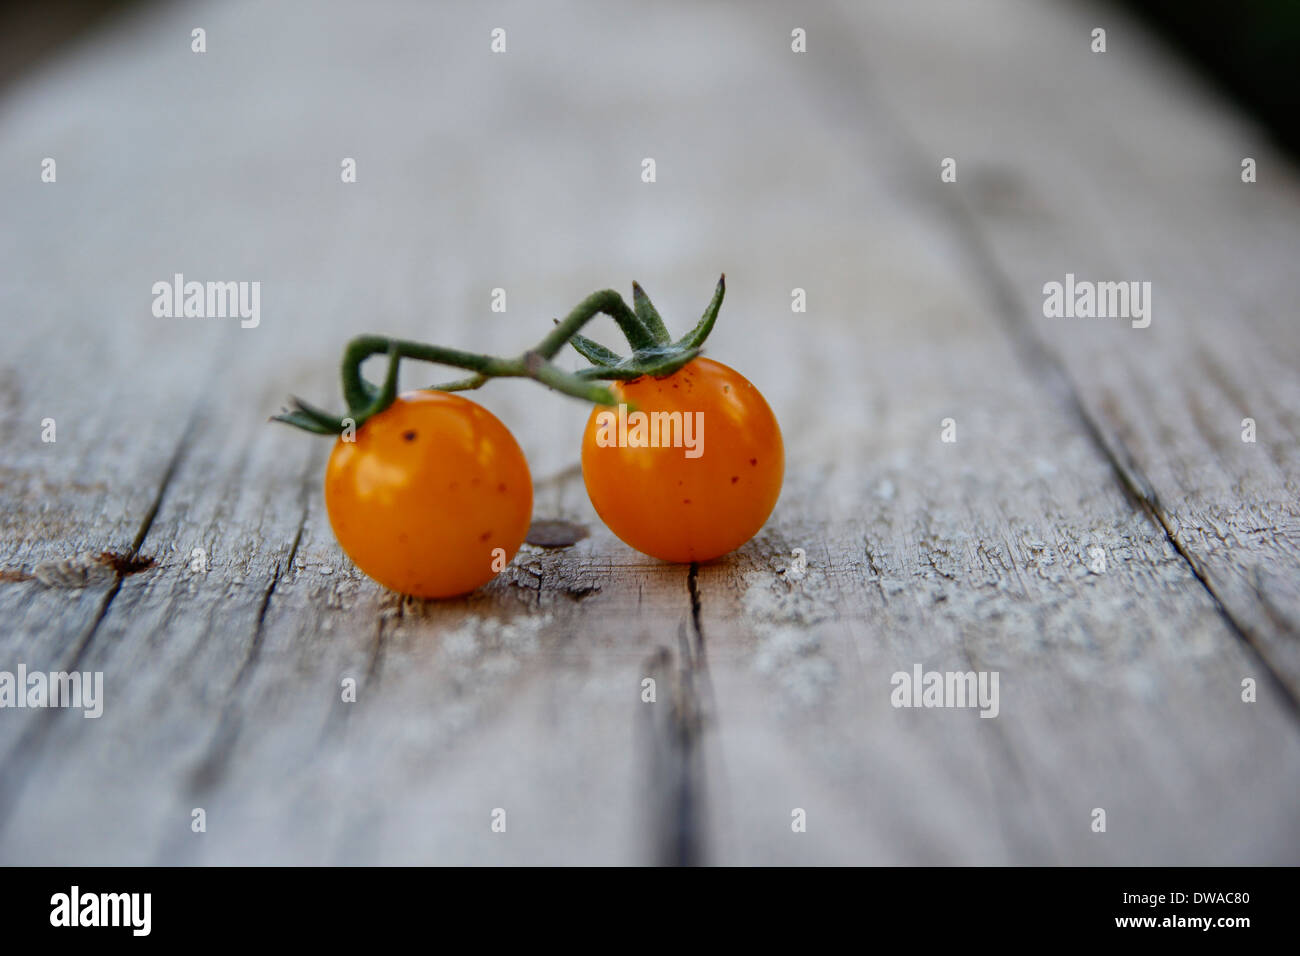 tomato, tomatoe, ketchup, fresh, one, cut, food, white, isolated, wet, ripe, on, green, dropped, red, vegetable, half, piece, co - Stock Image